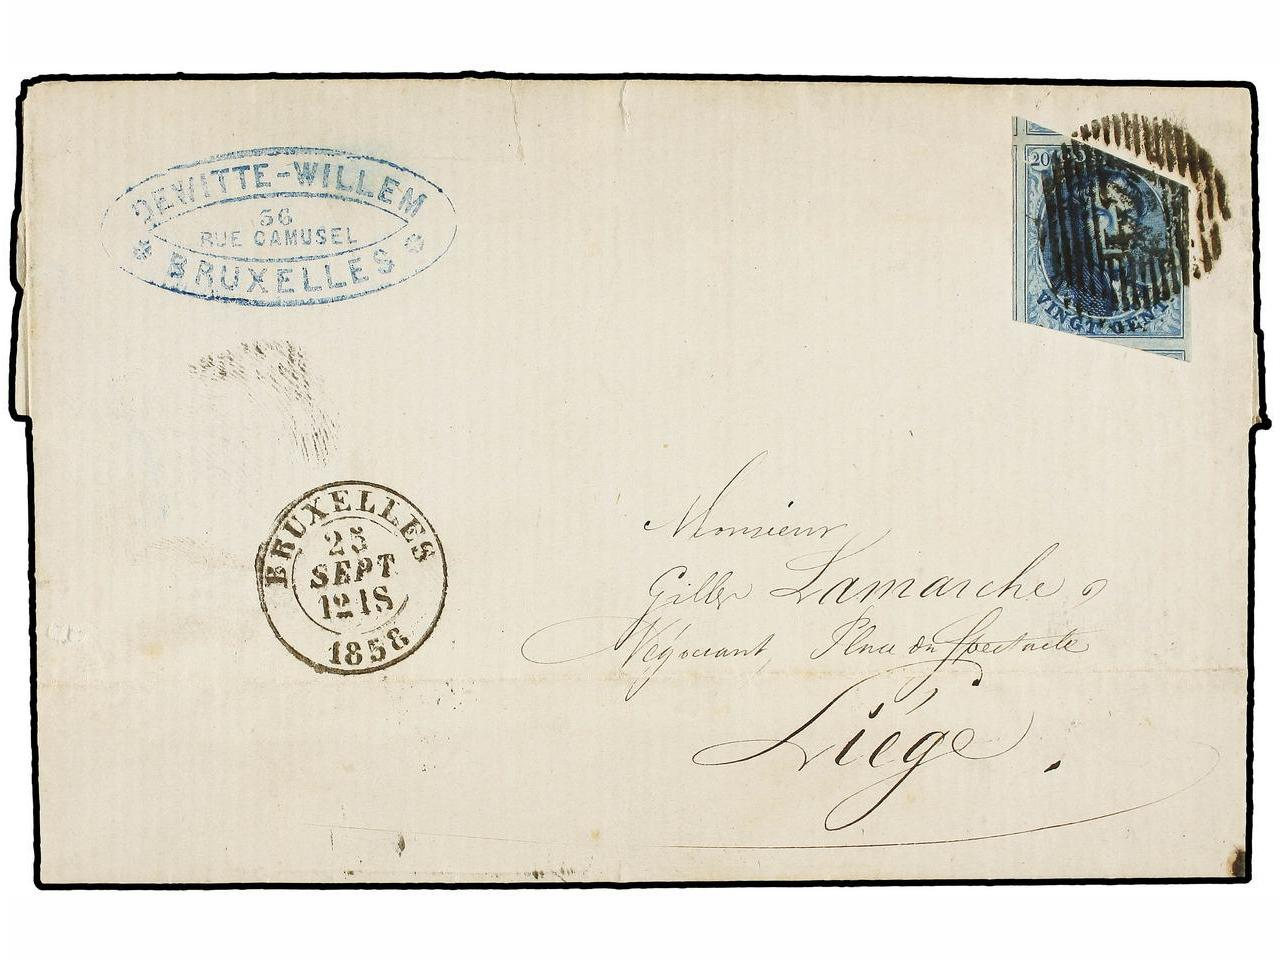 ✉ BELGICA. 1858. BRUXELLES to LIEGE. Entire letter franked w